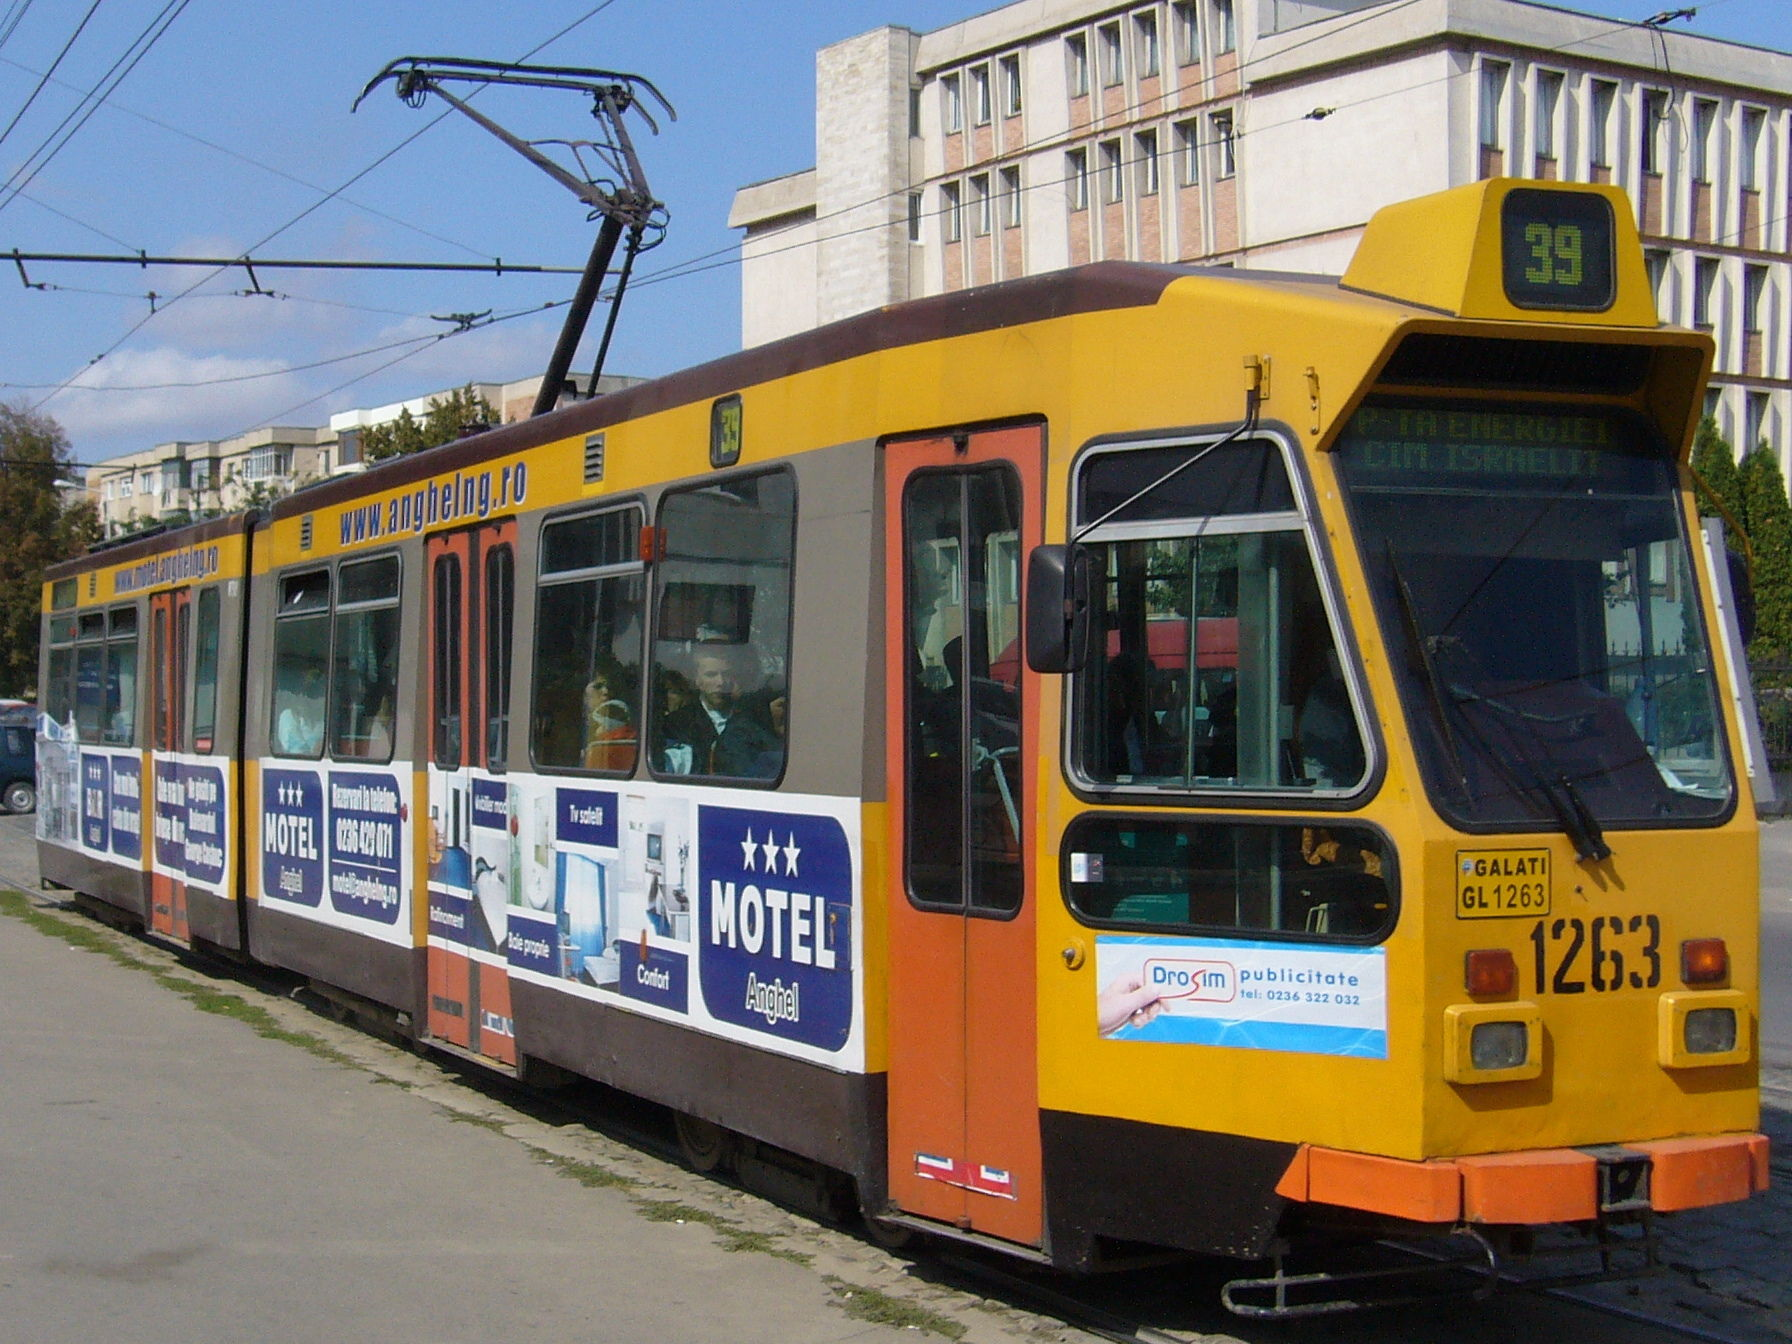 1263 comes from: Rotterdam